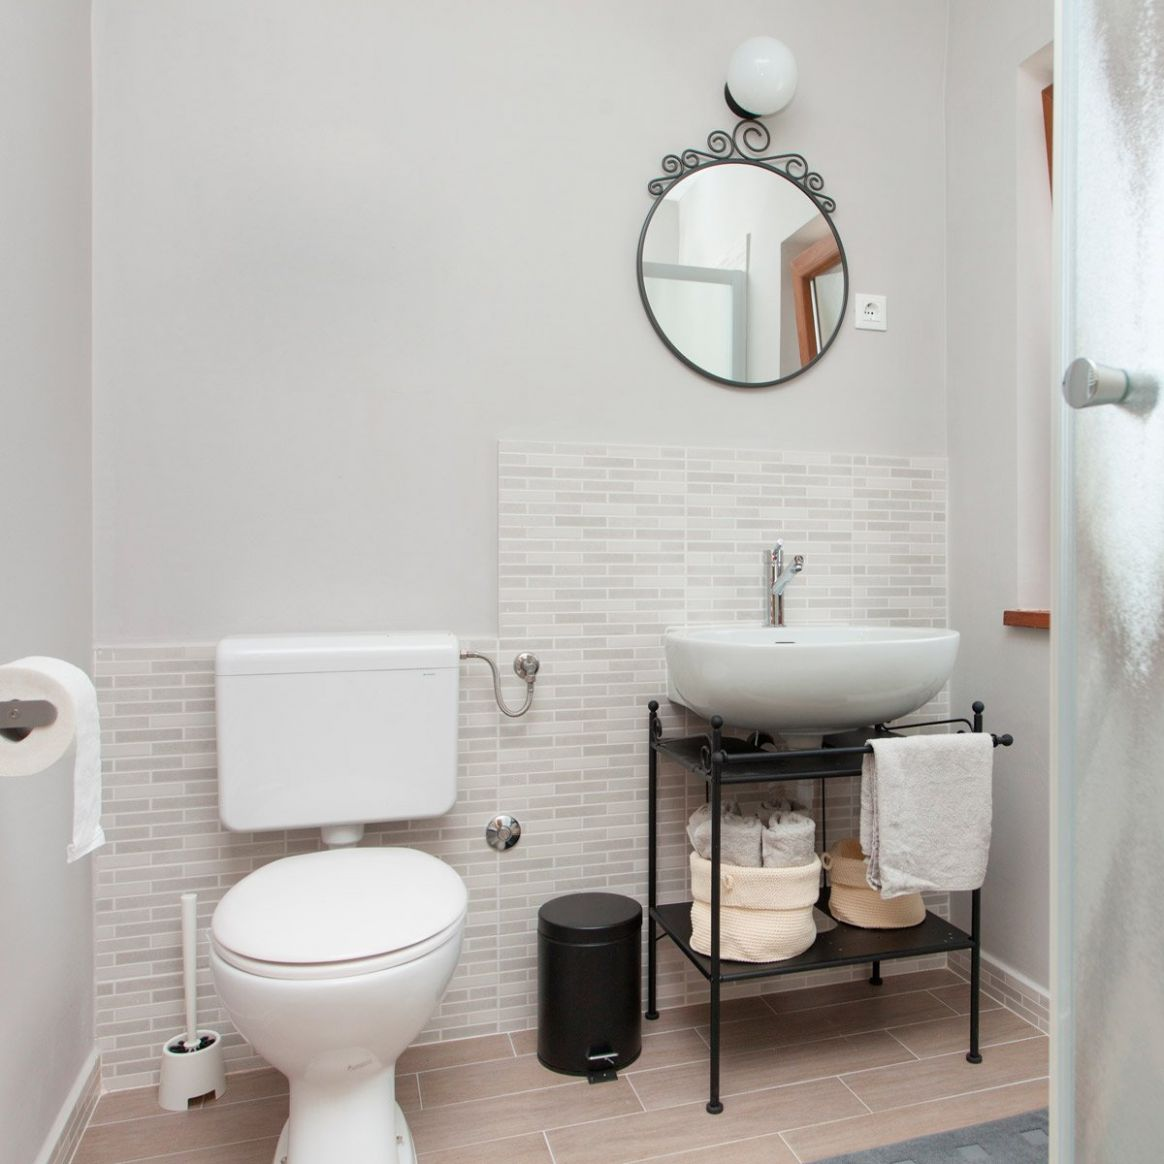 10 Small Bathroom Ideas That Make a Big Impact | Family Handyman - bathroom ideas you can use